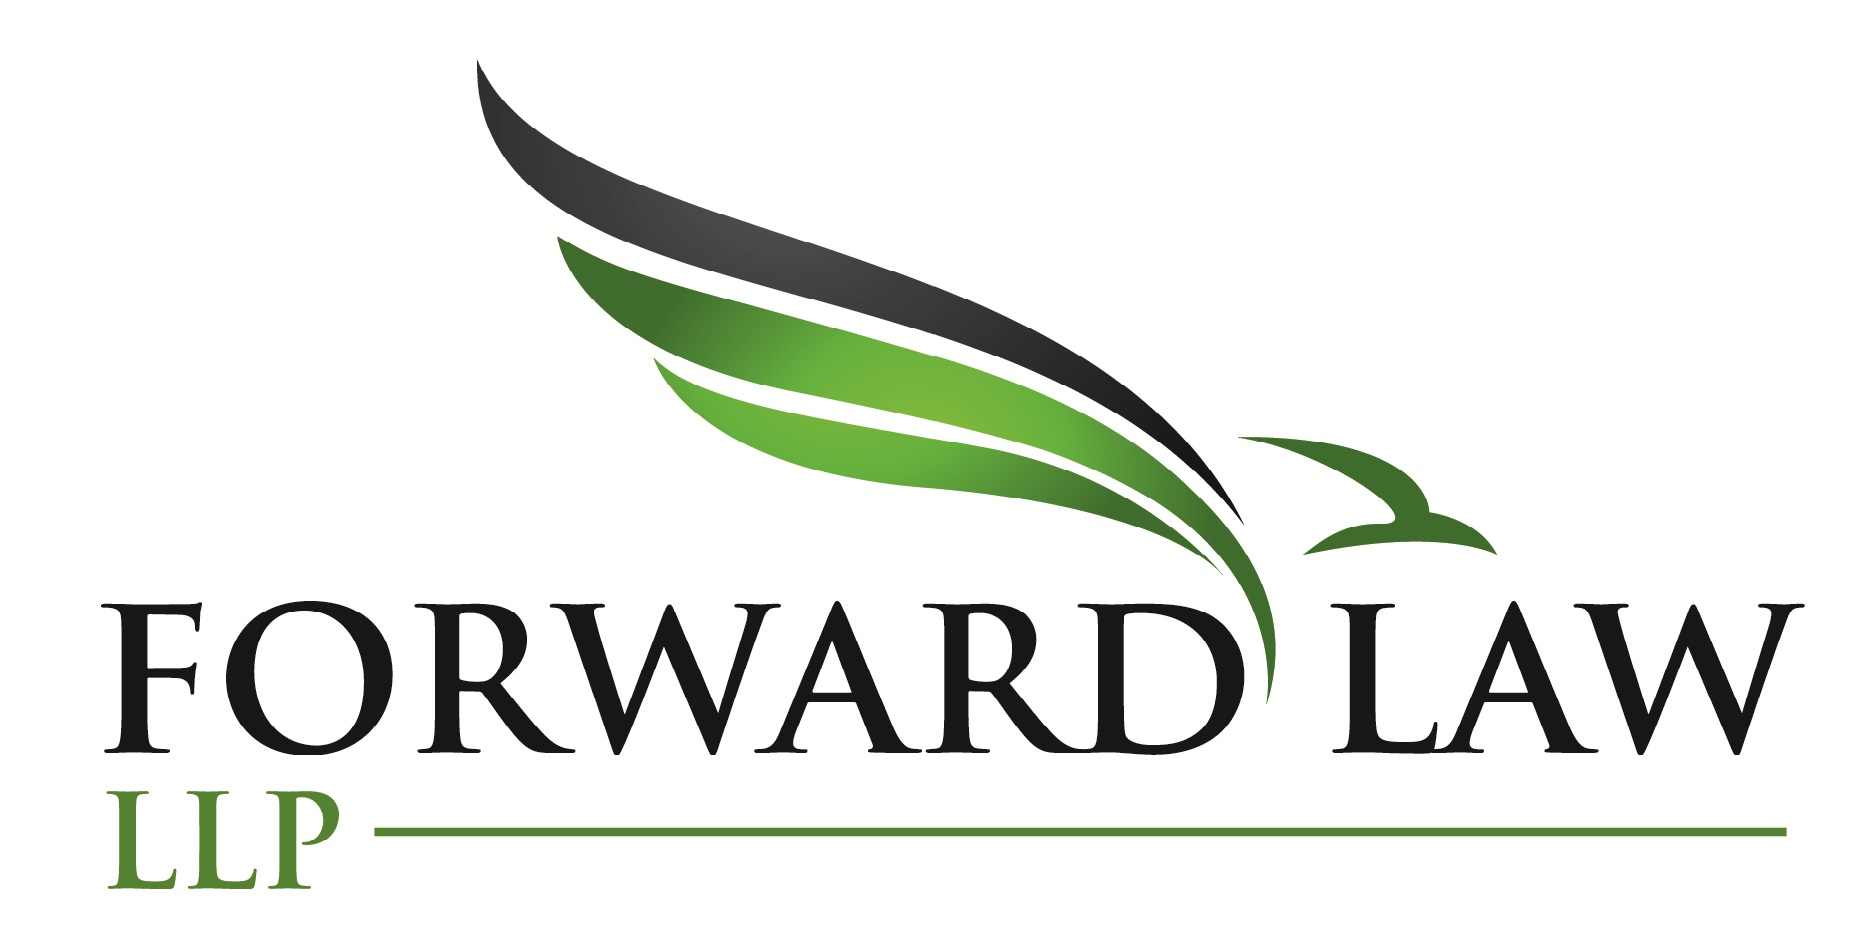 Forward Law LLP Logo.jpg